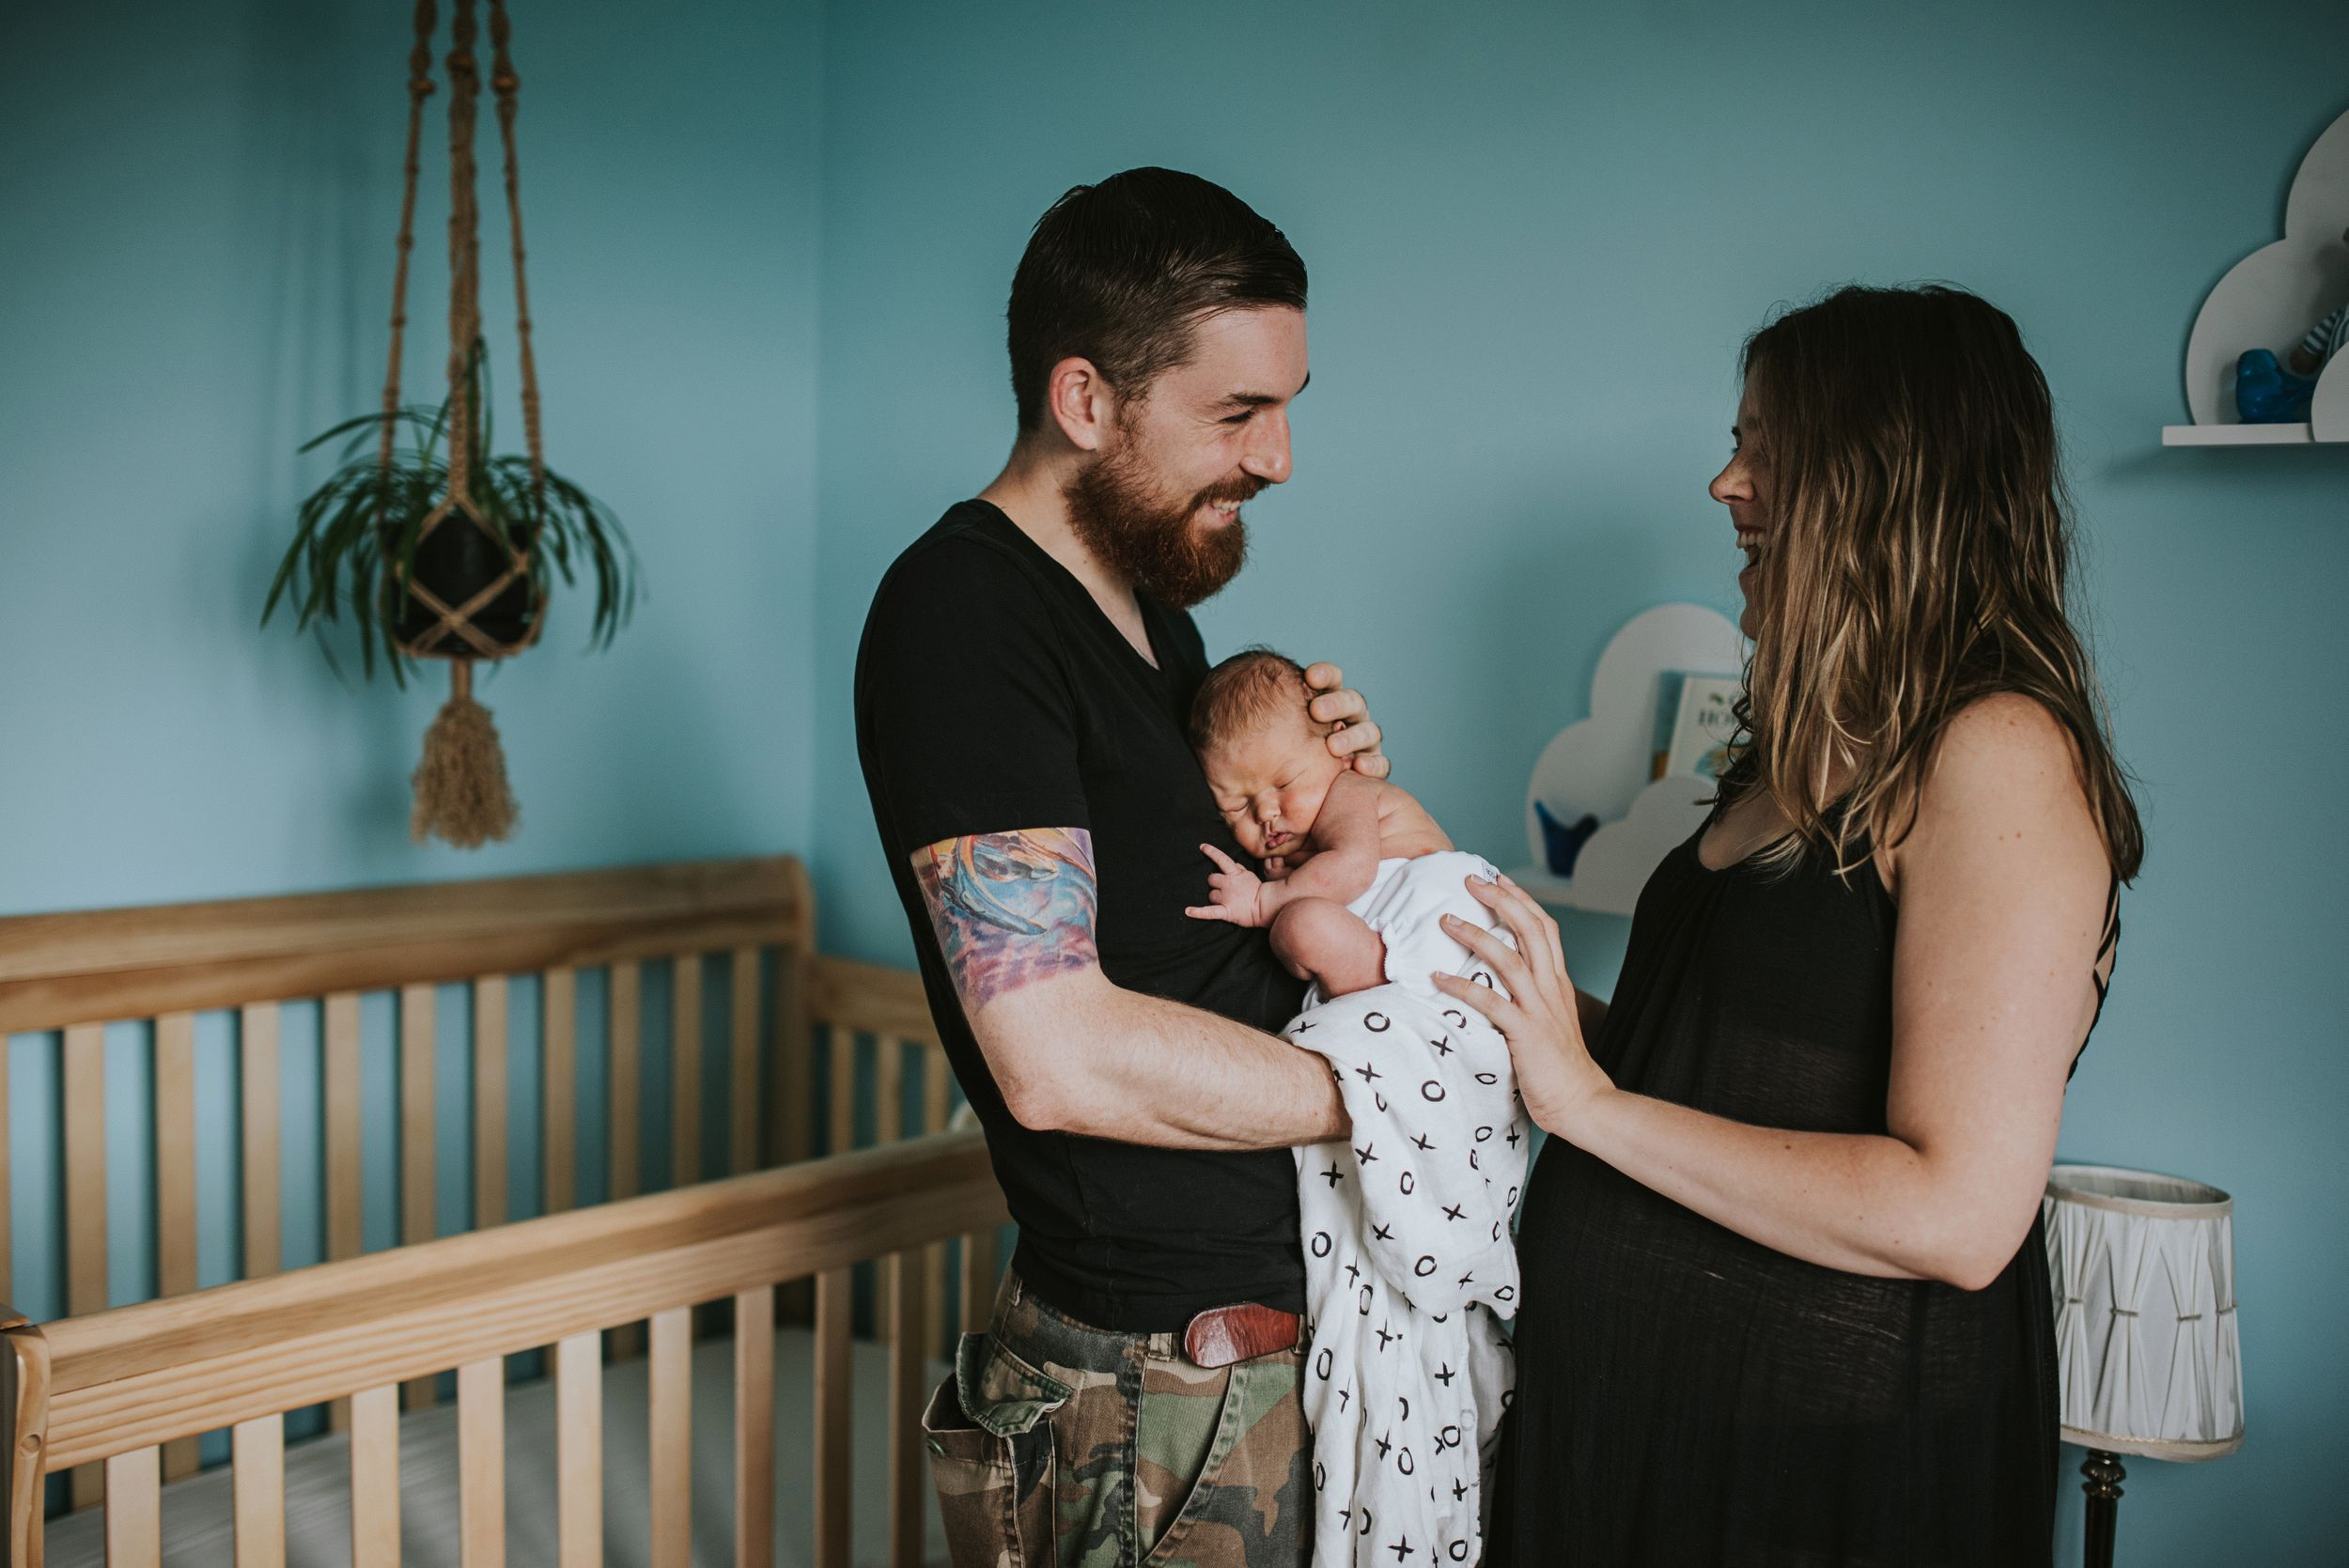 Tattooed father holds newborn son with his wife, the child is giving metal hand sign for rock on.